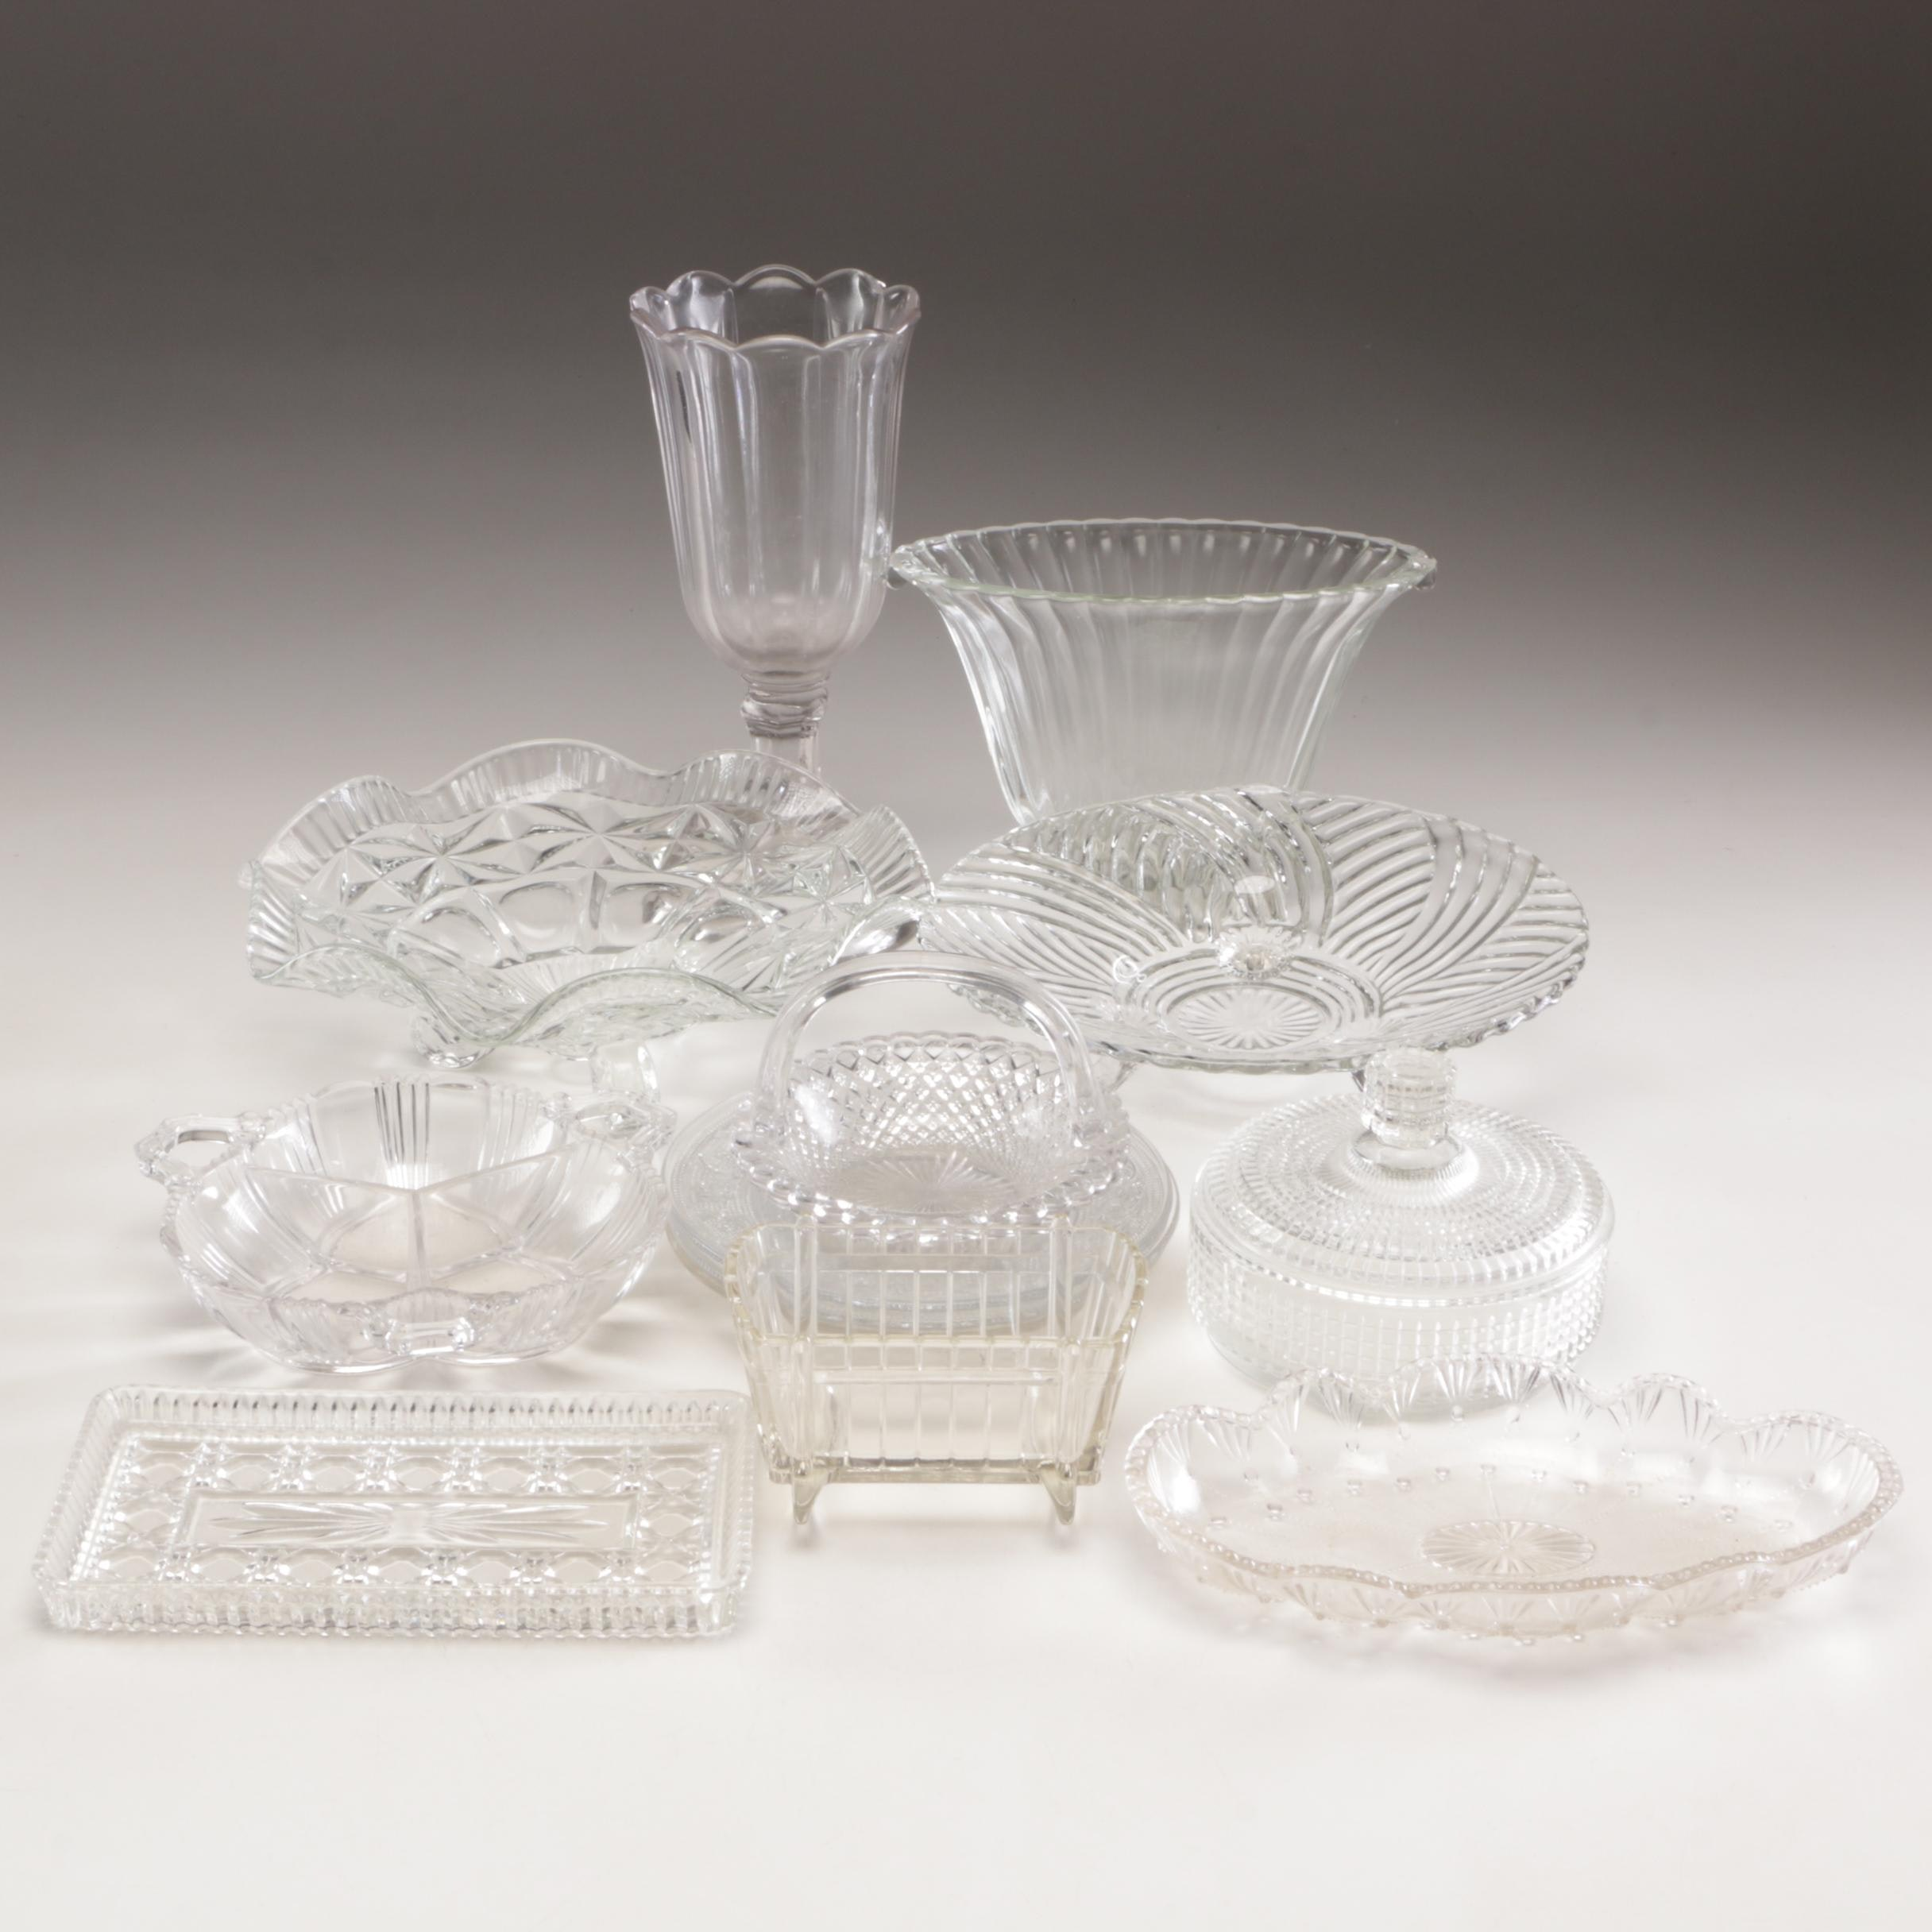 Group of Pressed Glass Vases, Bowls, and Decor